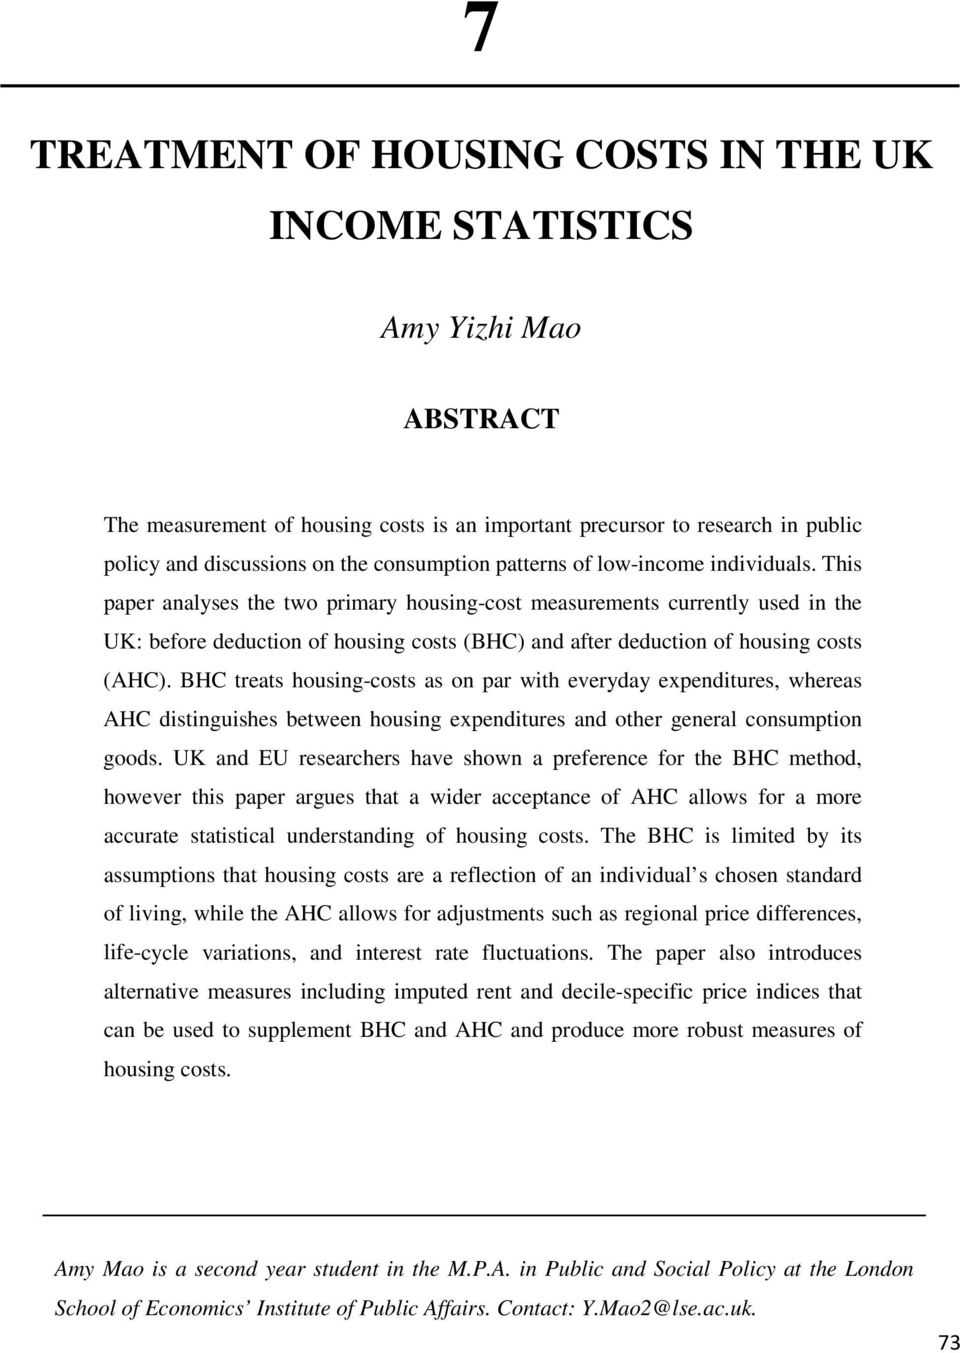 This paper analyses the two primary housing-cost measurements currently used in the UK: before deduction of housing costs (BHC) and after deduction of housing costs (AHC).